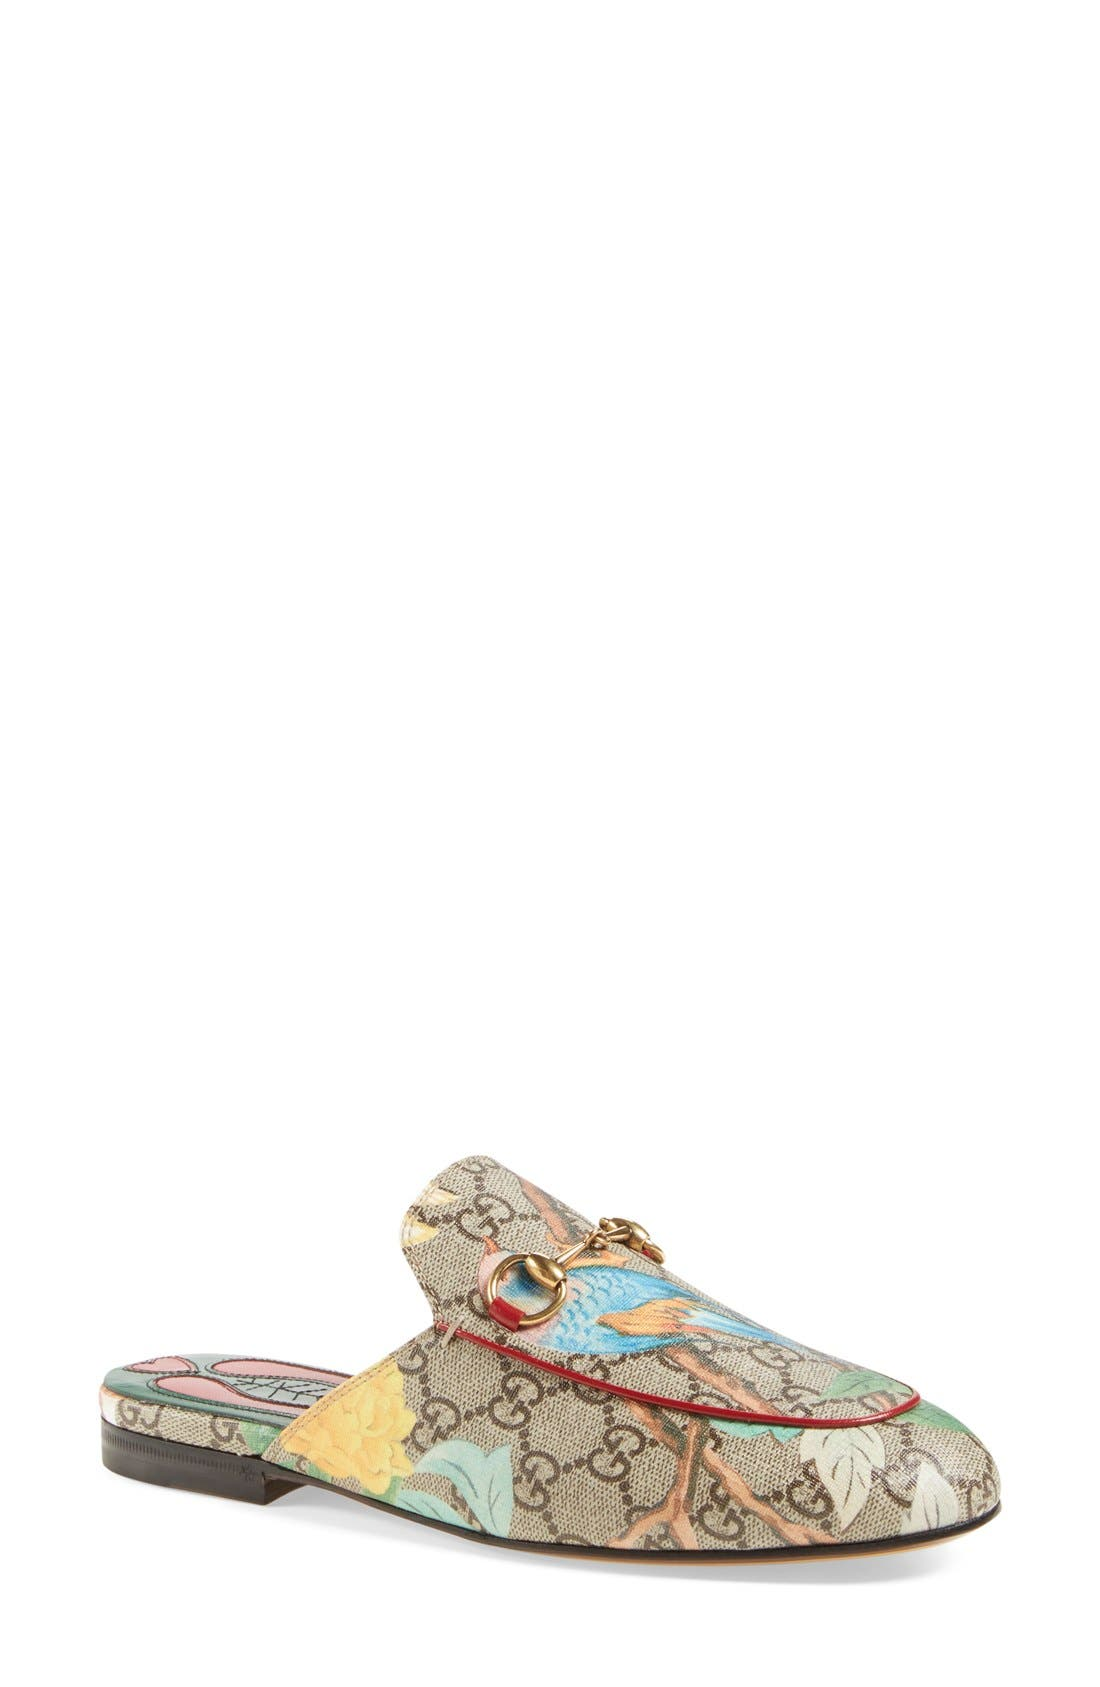 'Princetown' Floral Print Mule Loafer,                         Main,                         color,